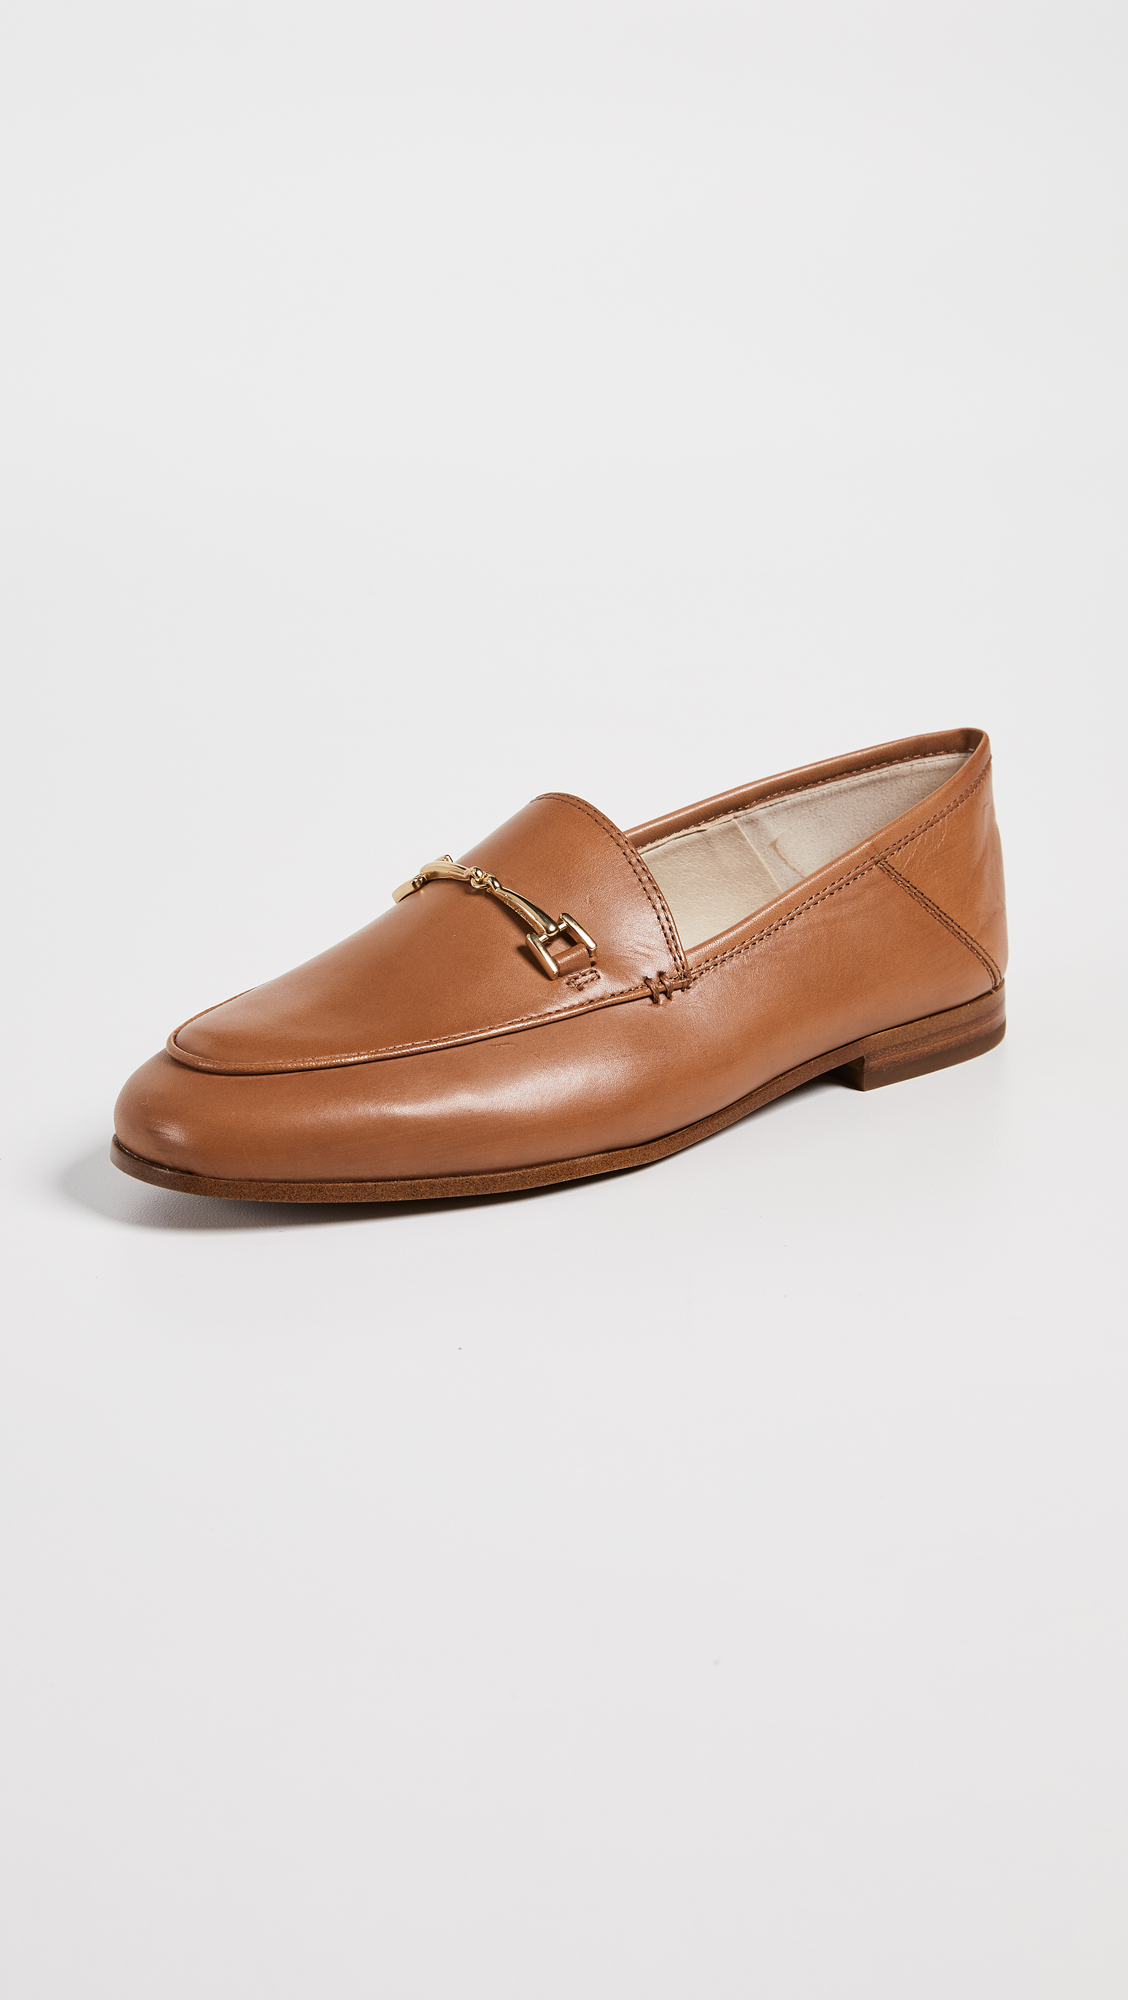 Leather with Gold Hardware Loafers